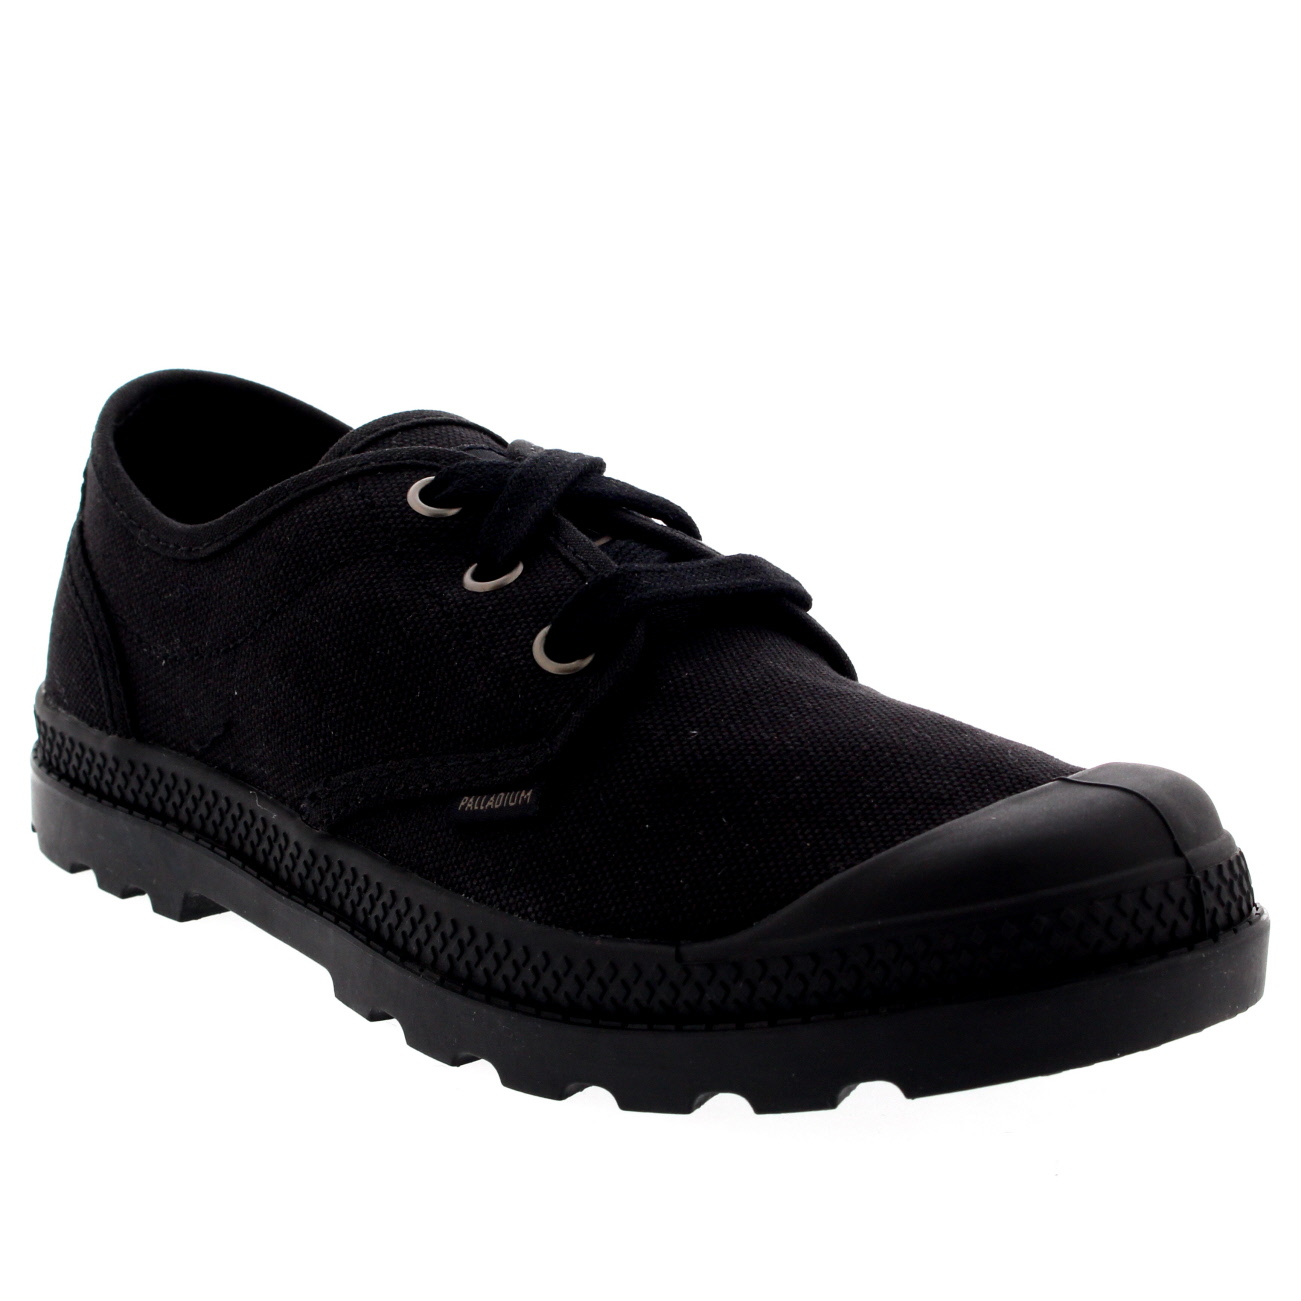 Palladium Oxford Low Top